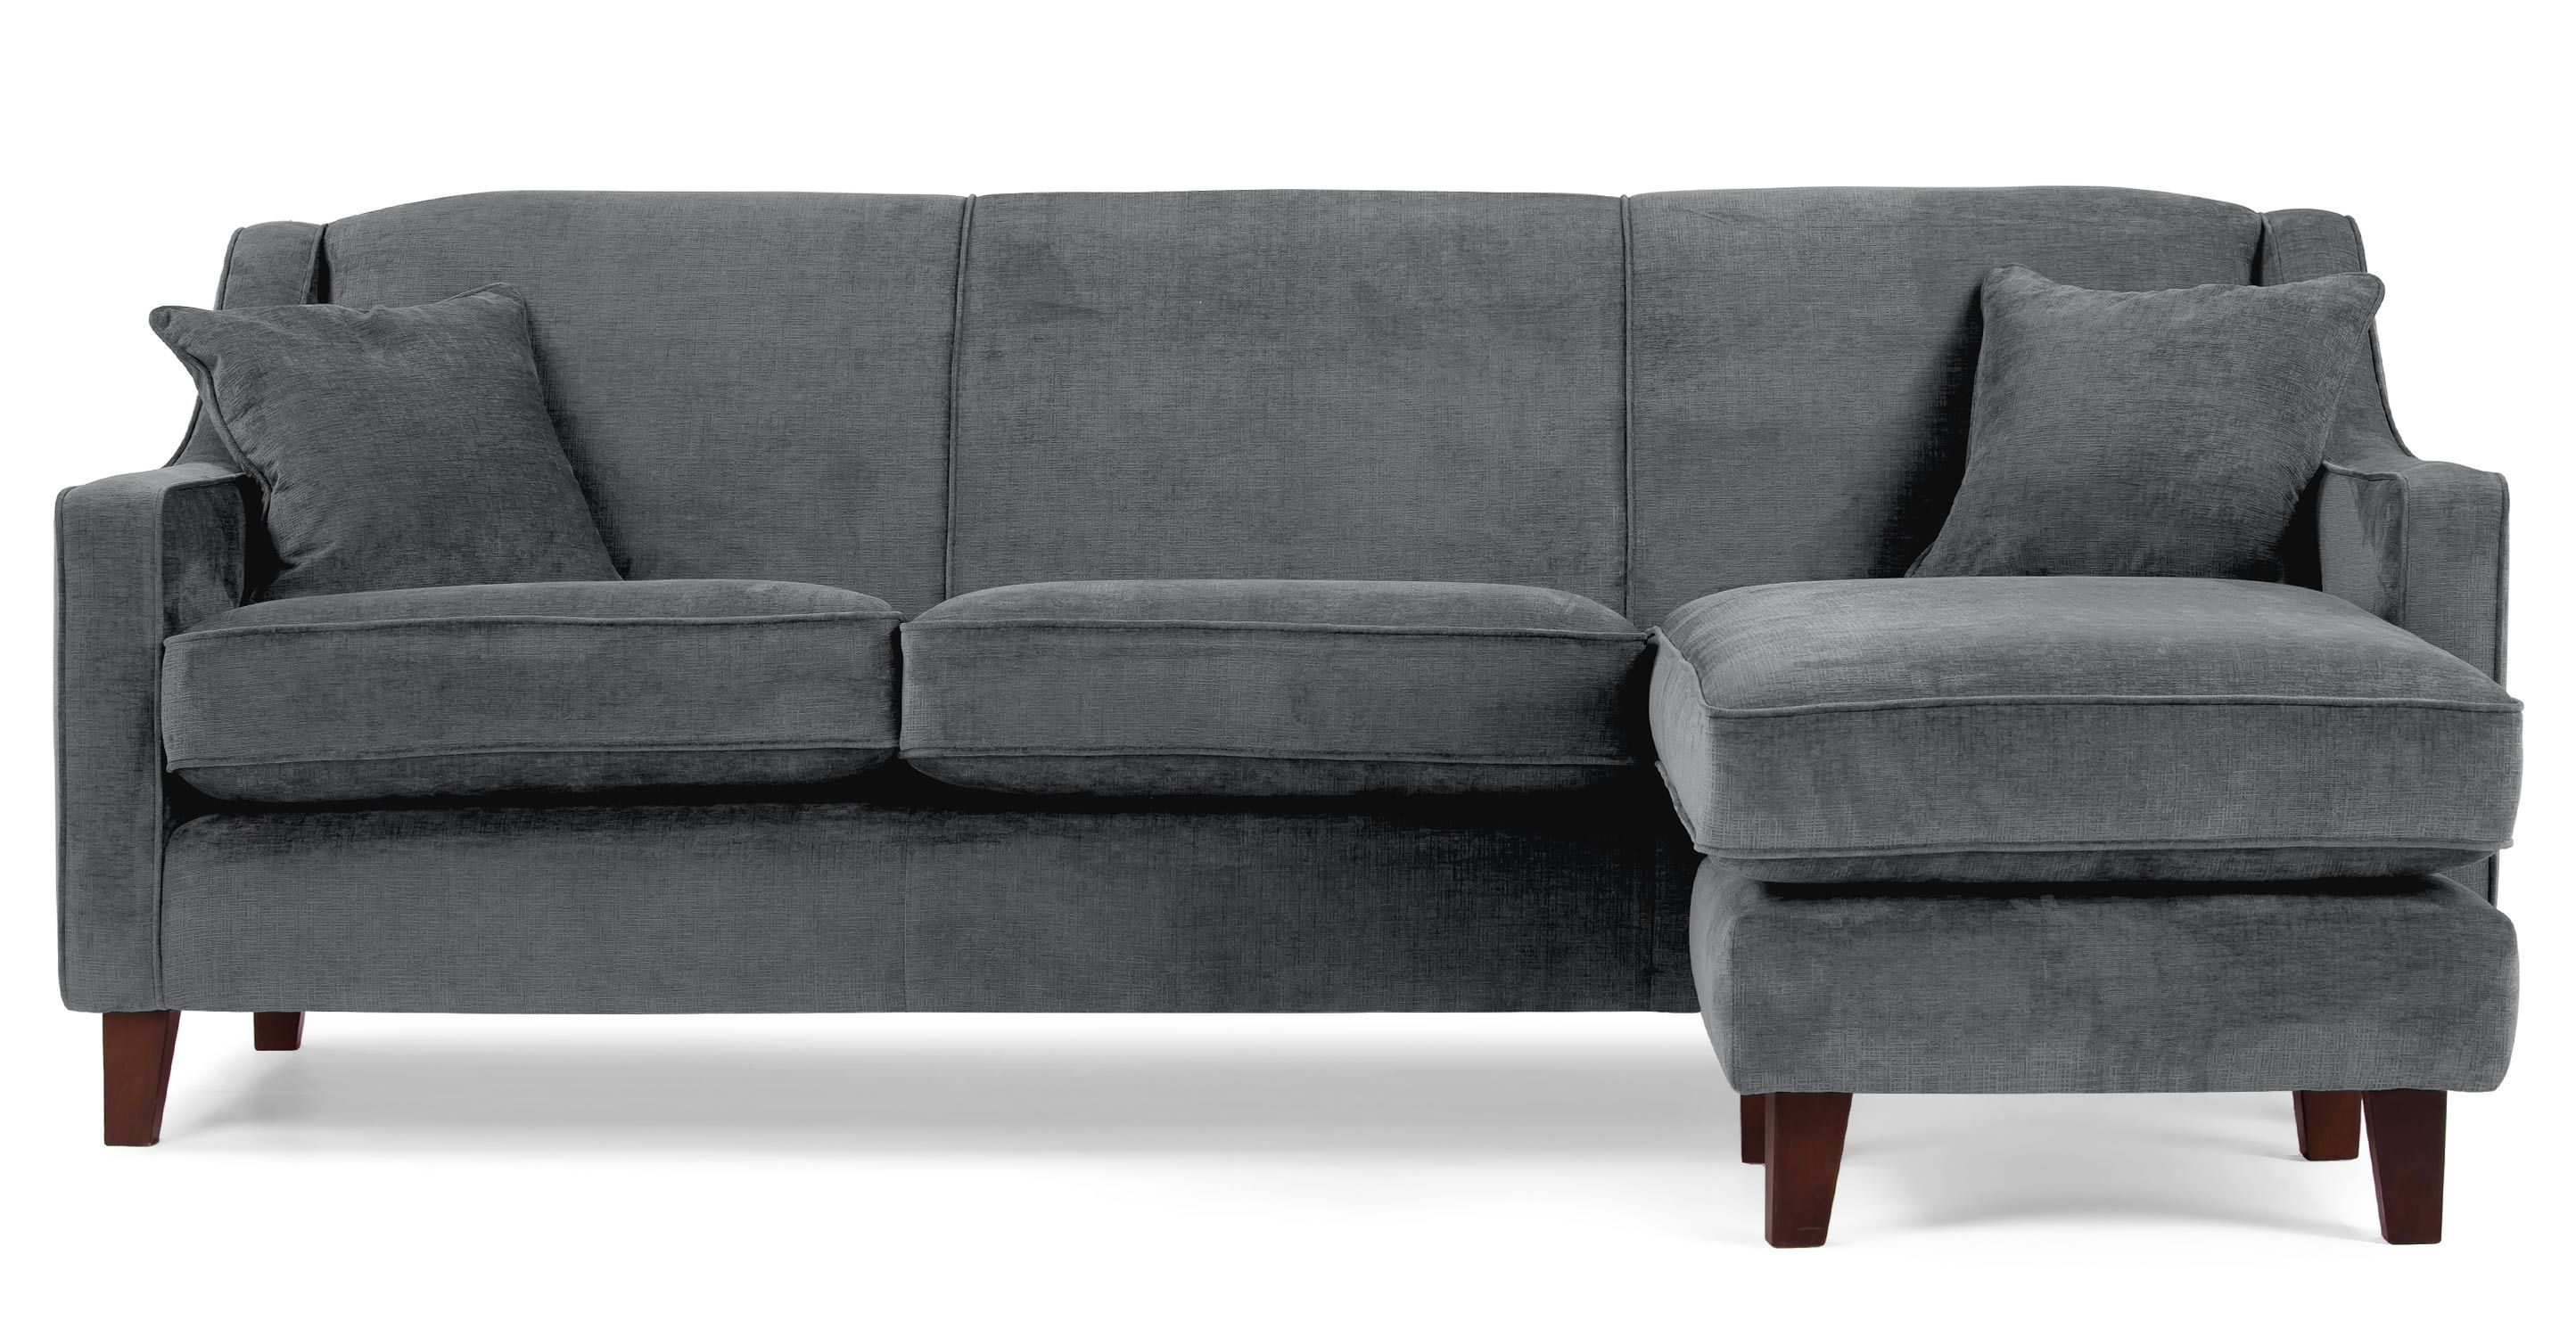 corner sofa couches small 2 piece sectional halston large in dusk grey and gray